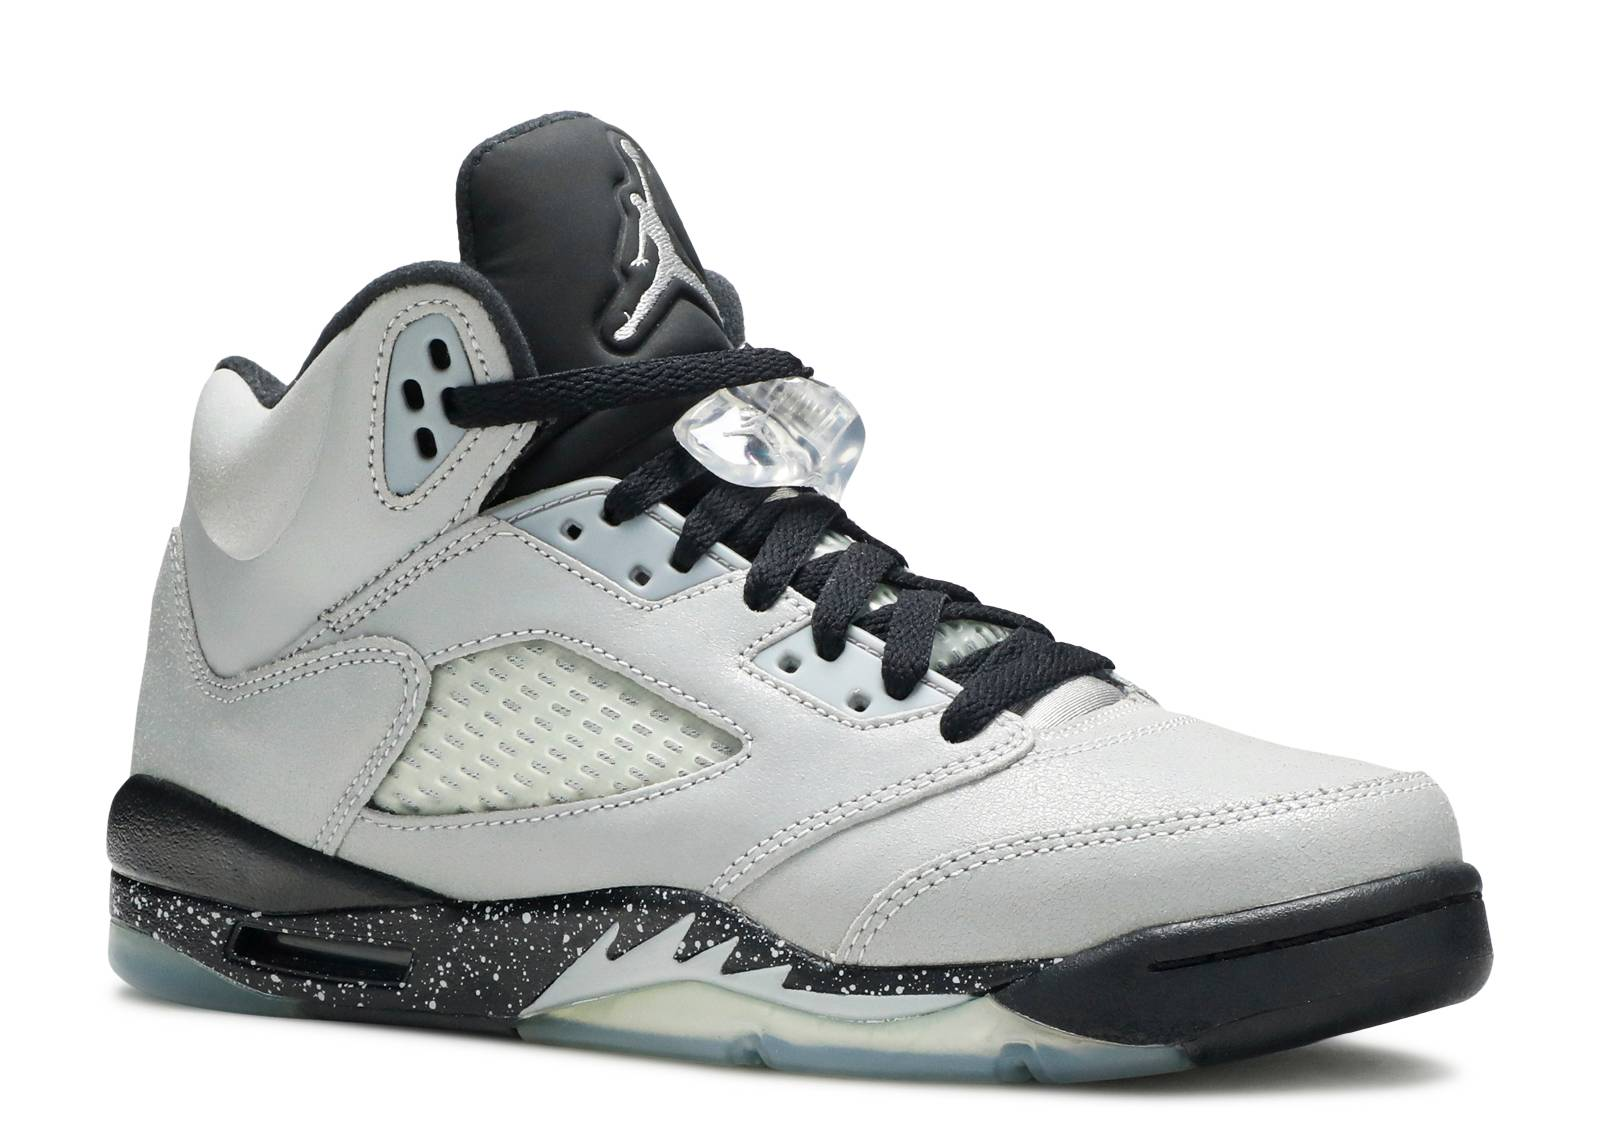 Nike Air Jordan V 5 Retro GG Wolf Grey//Black-Black 440892-008 Grade-School SZ 6Y